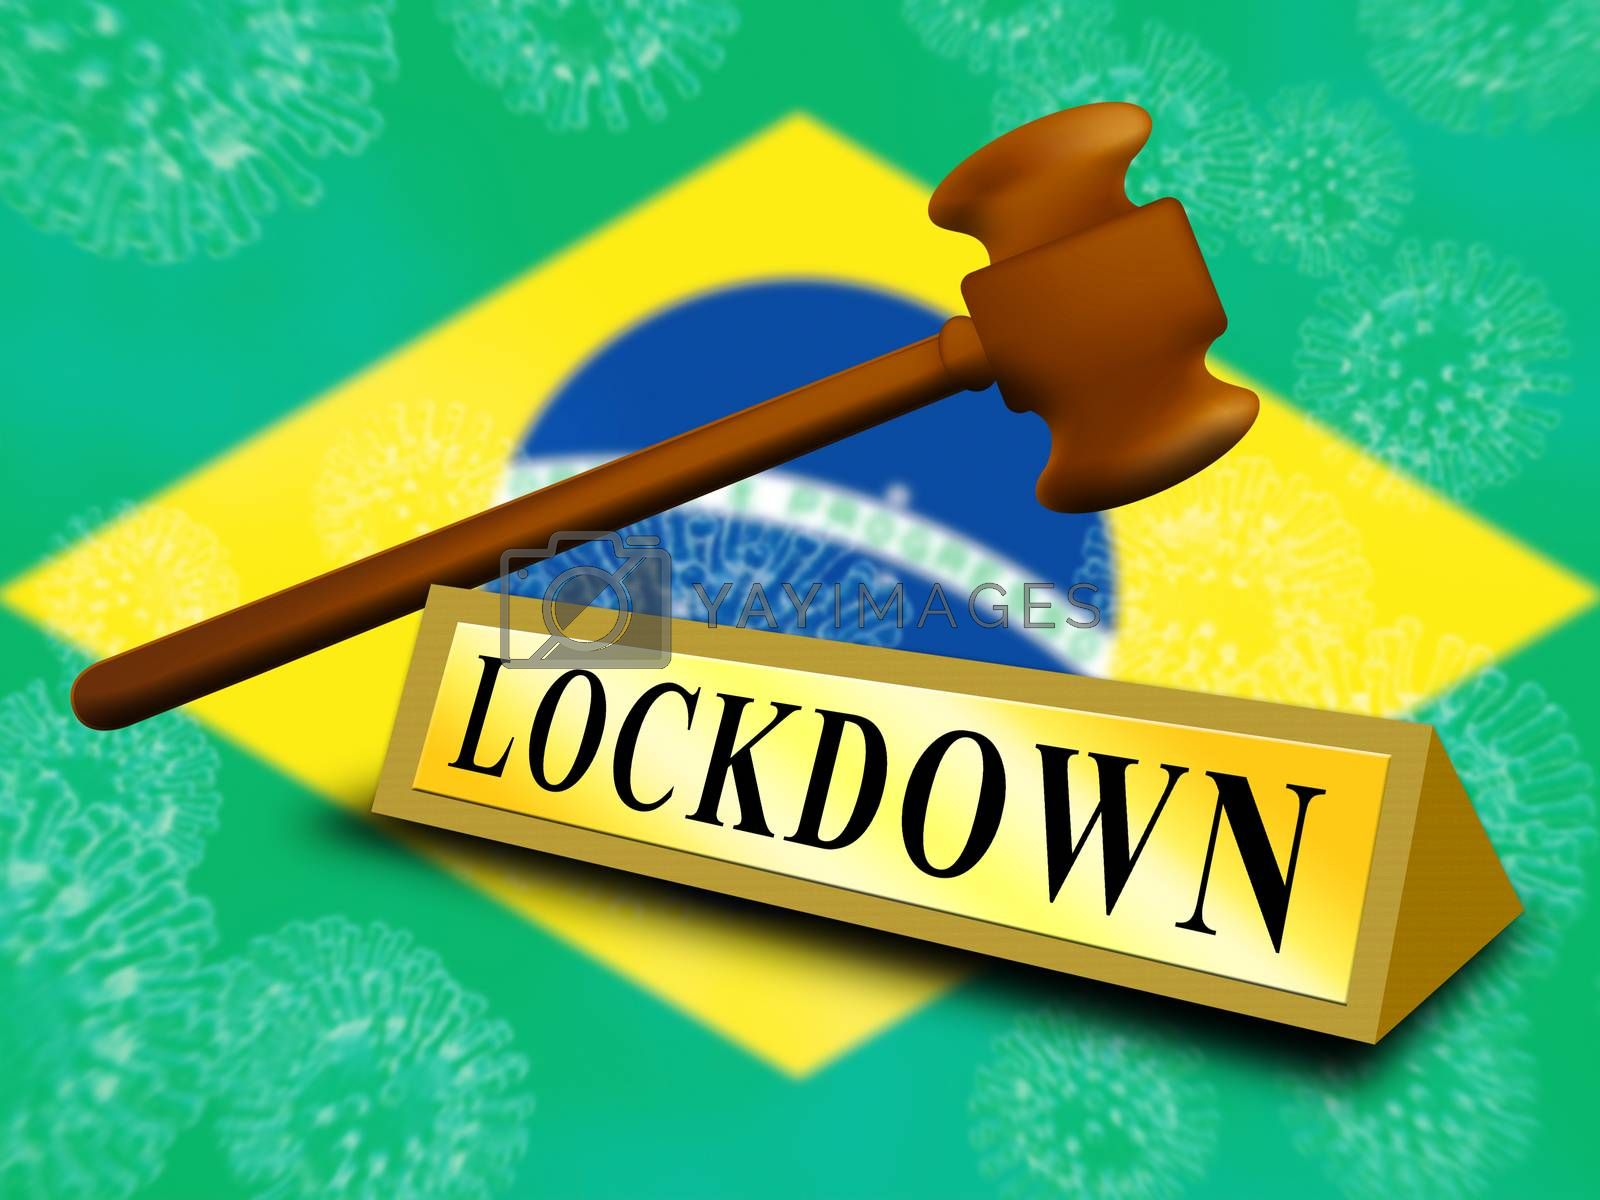 Brazil lockdown in solitary confinement or stay home. Brazilian lock down from covid-19 pandemic - 3d Illustration